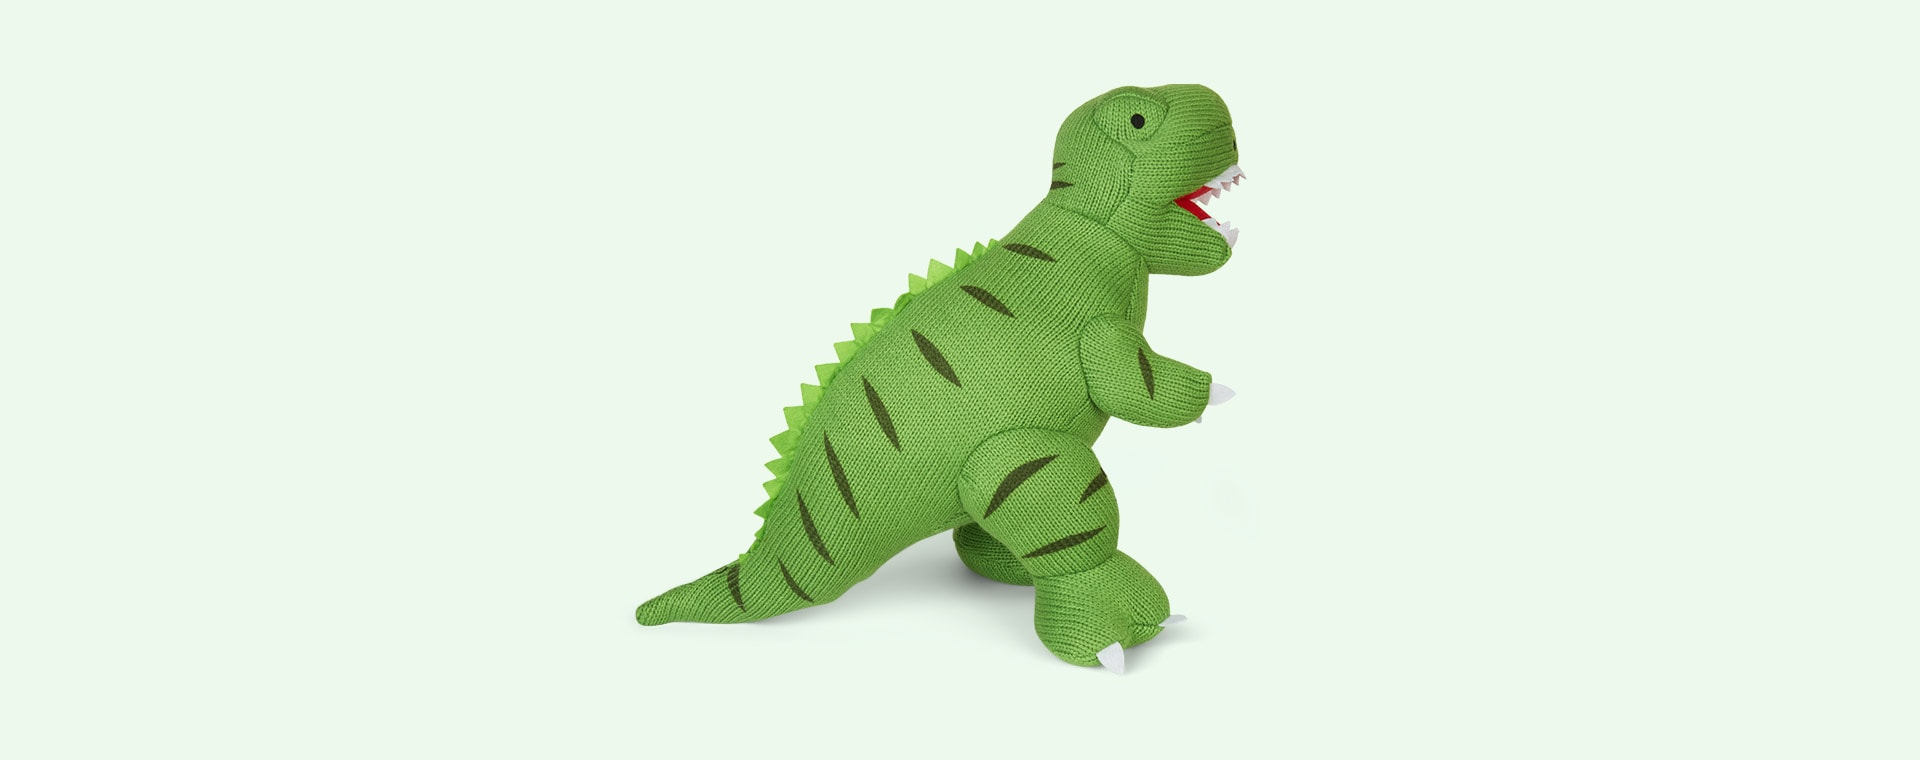 Green Best Years Large Knitted T Rex Dinosaur